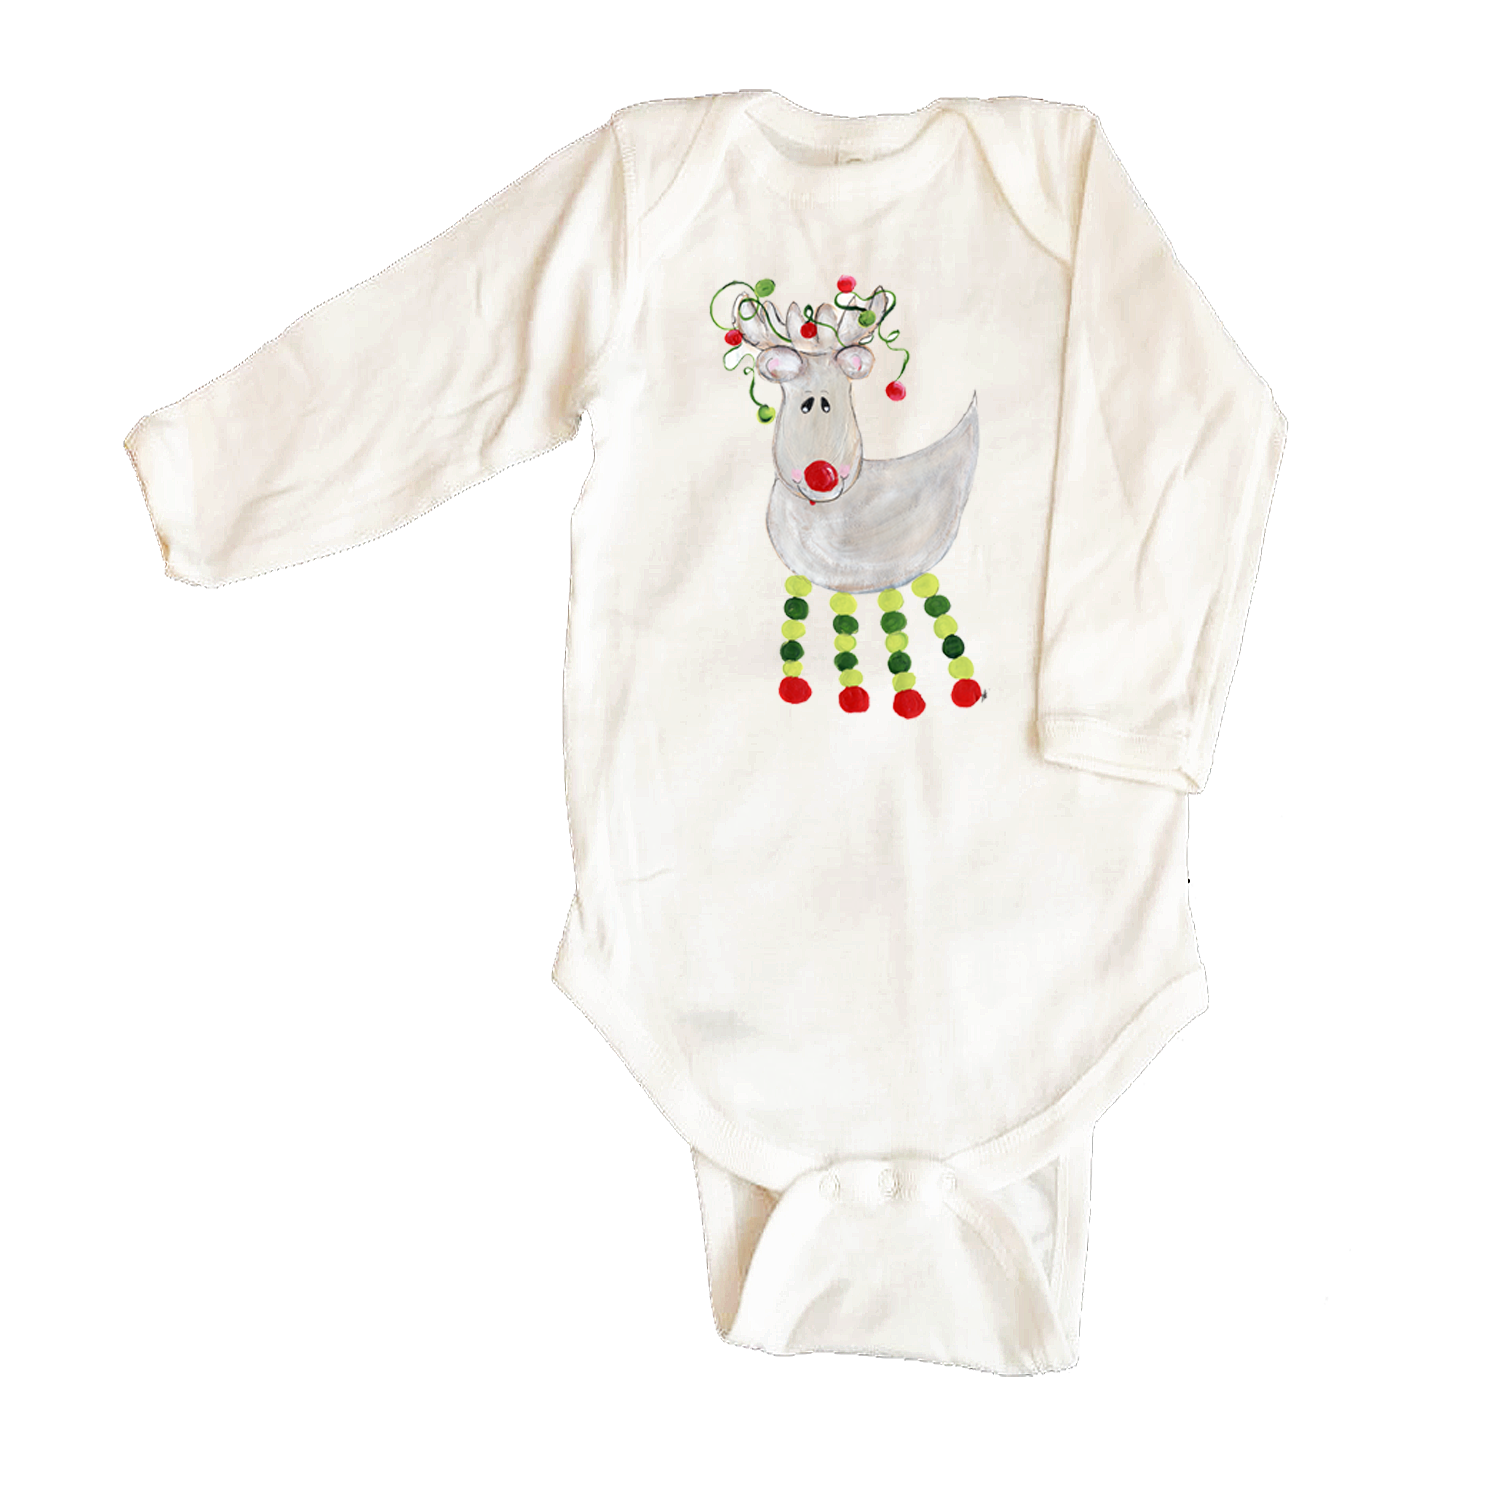 Rib Coverall Infant Baby Christmas 464-Green-Leg-Reindeer